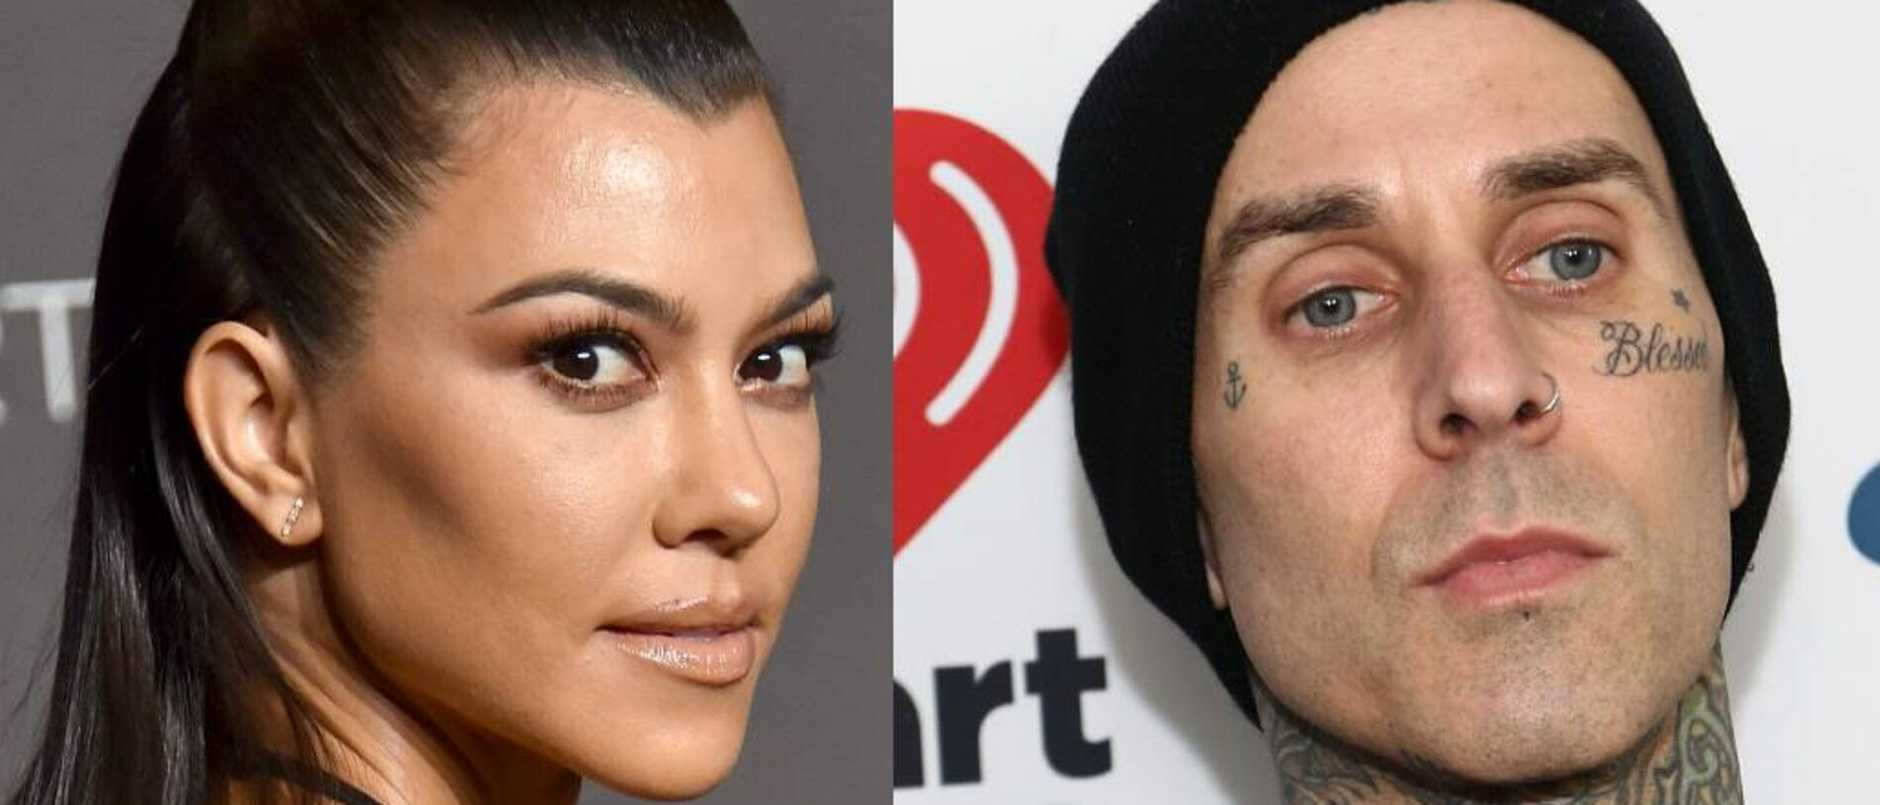 Nothing says 'I love you', more than giving your partner a vial of your own blood, which is exactly what Travis Barker did for Kourtney Kardashian.